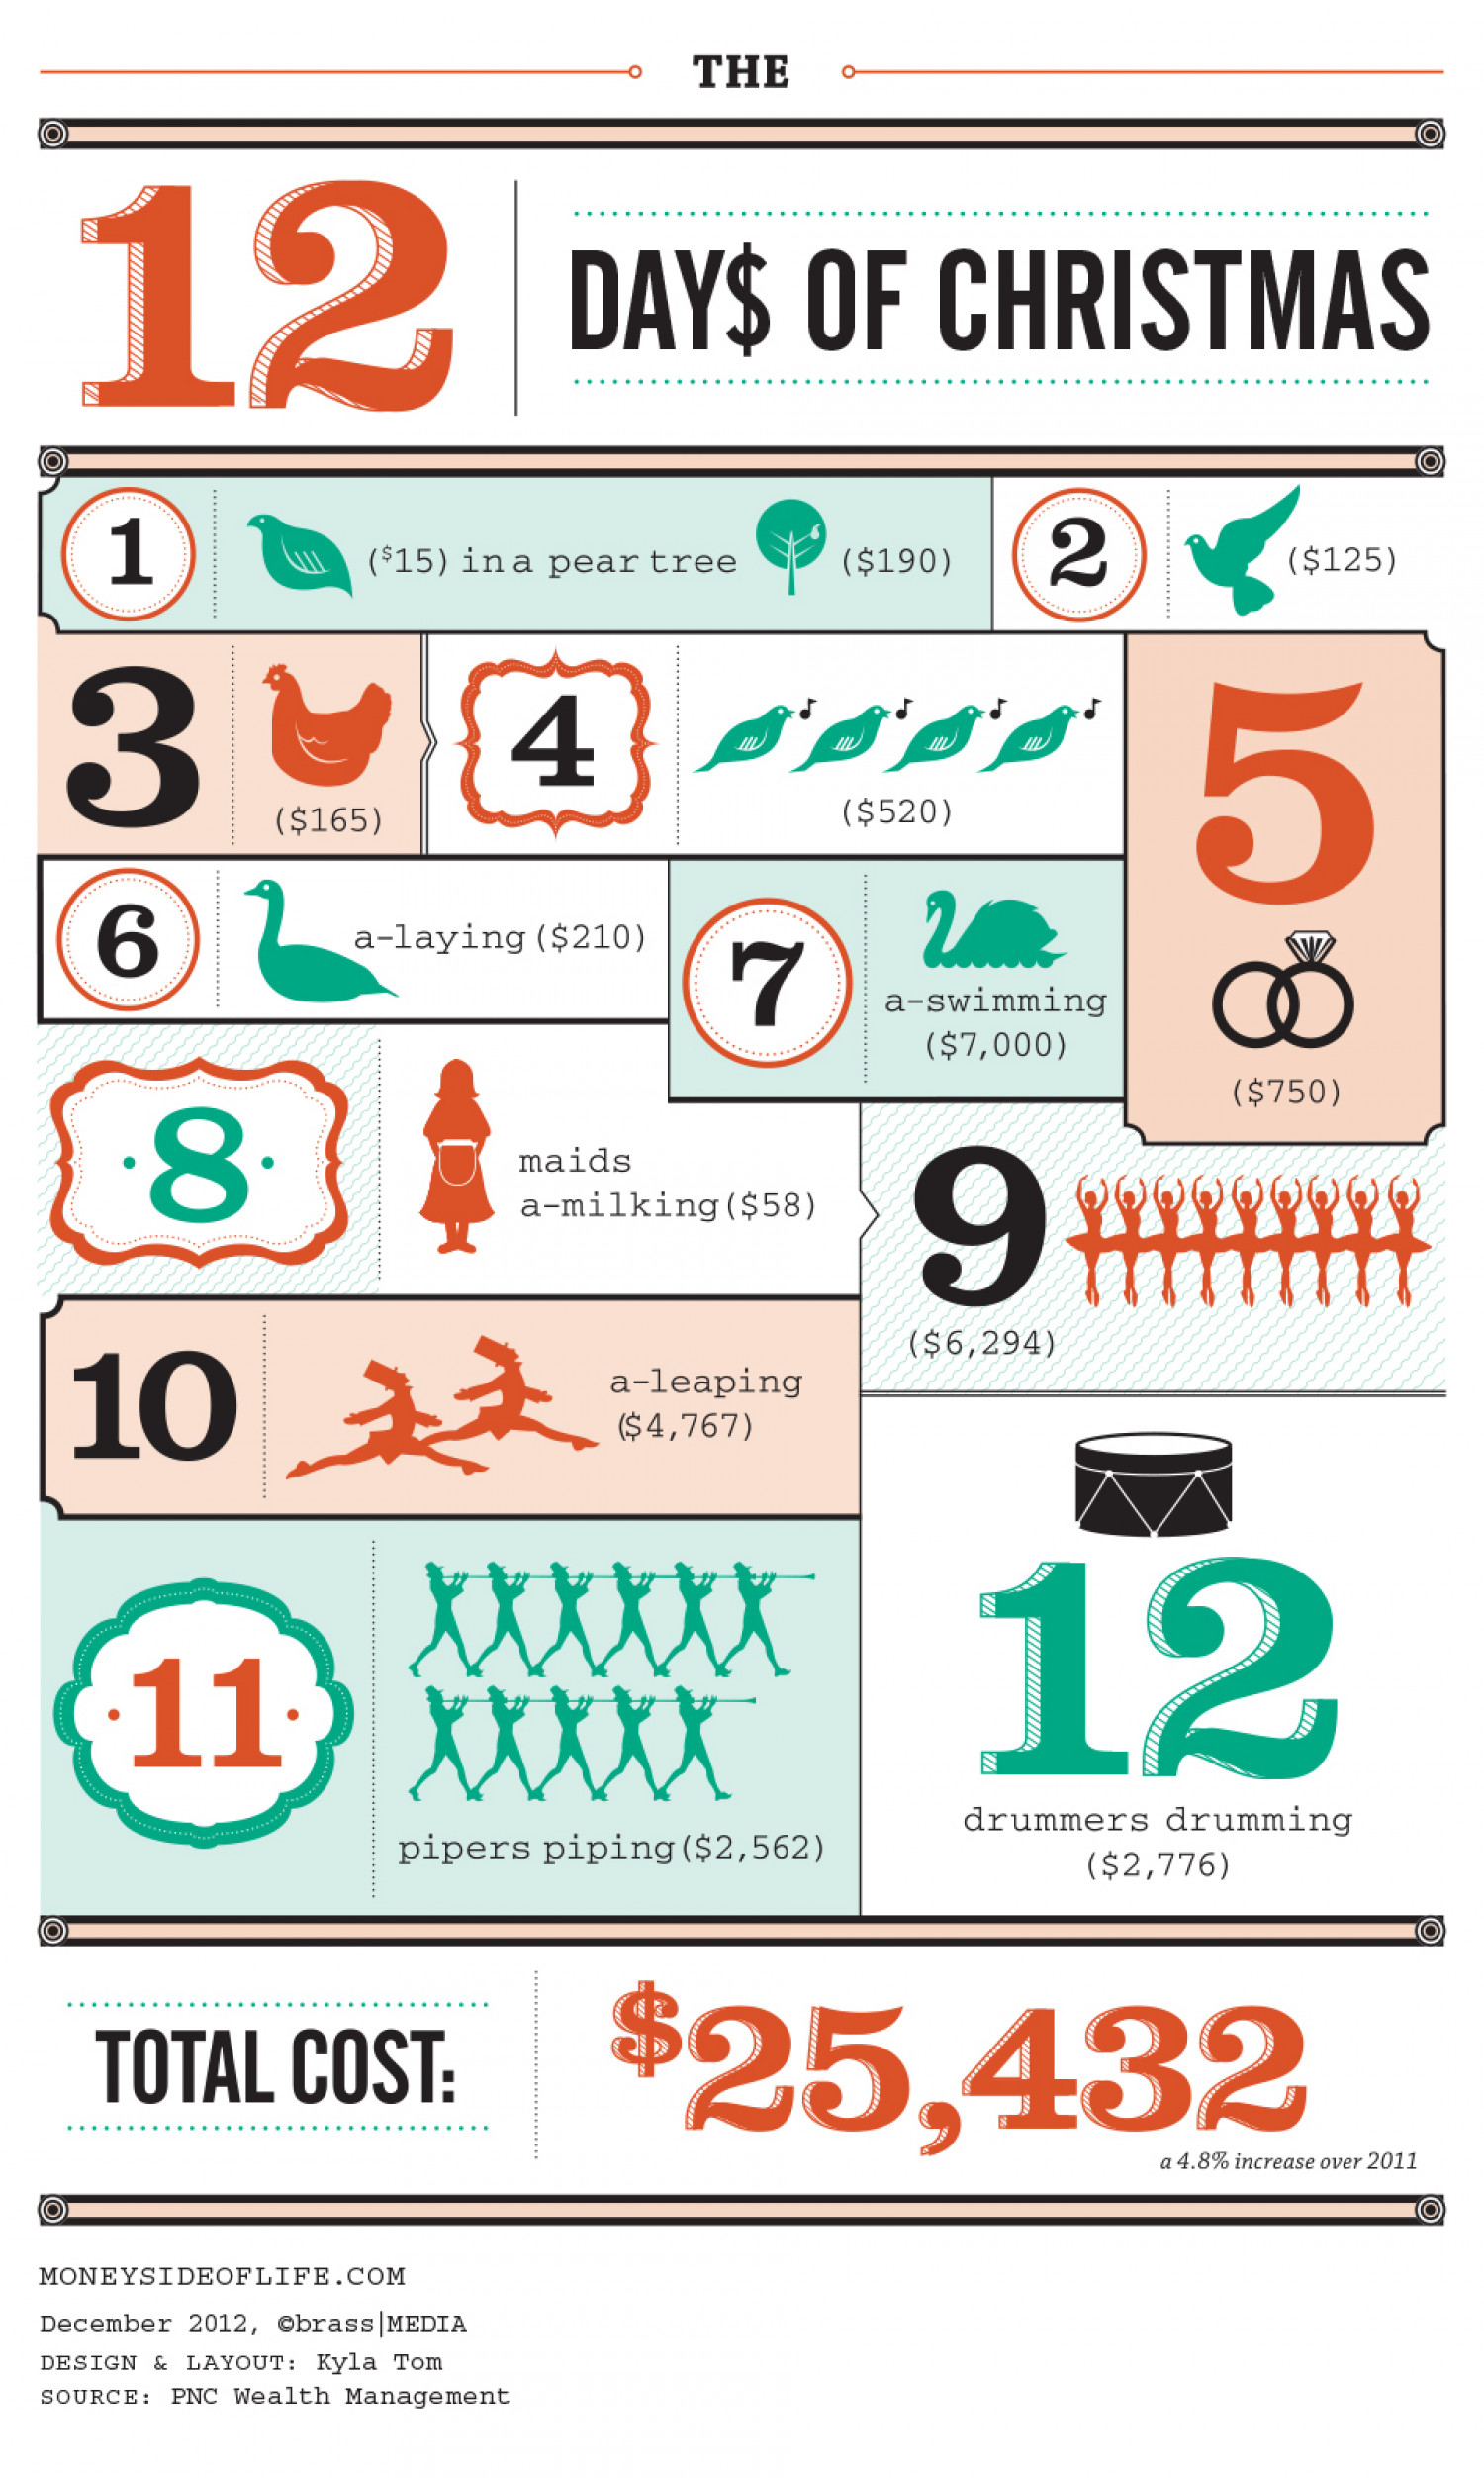 The Cost of the 12 Days of Christmas Infographic